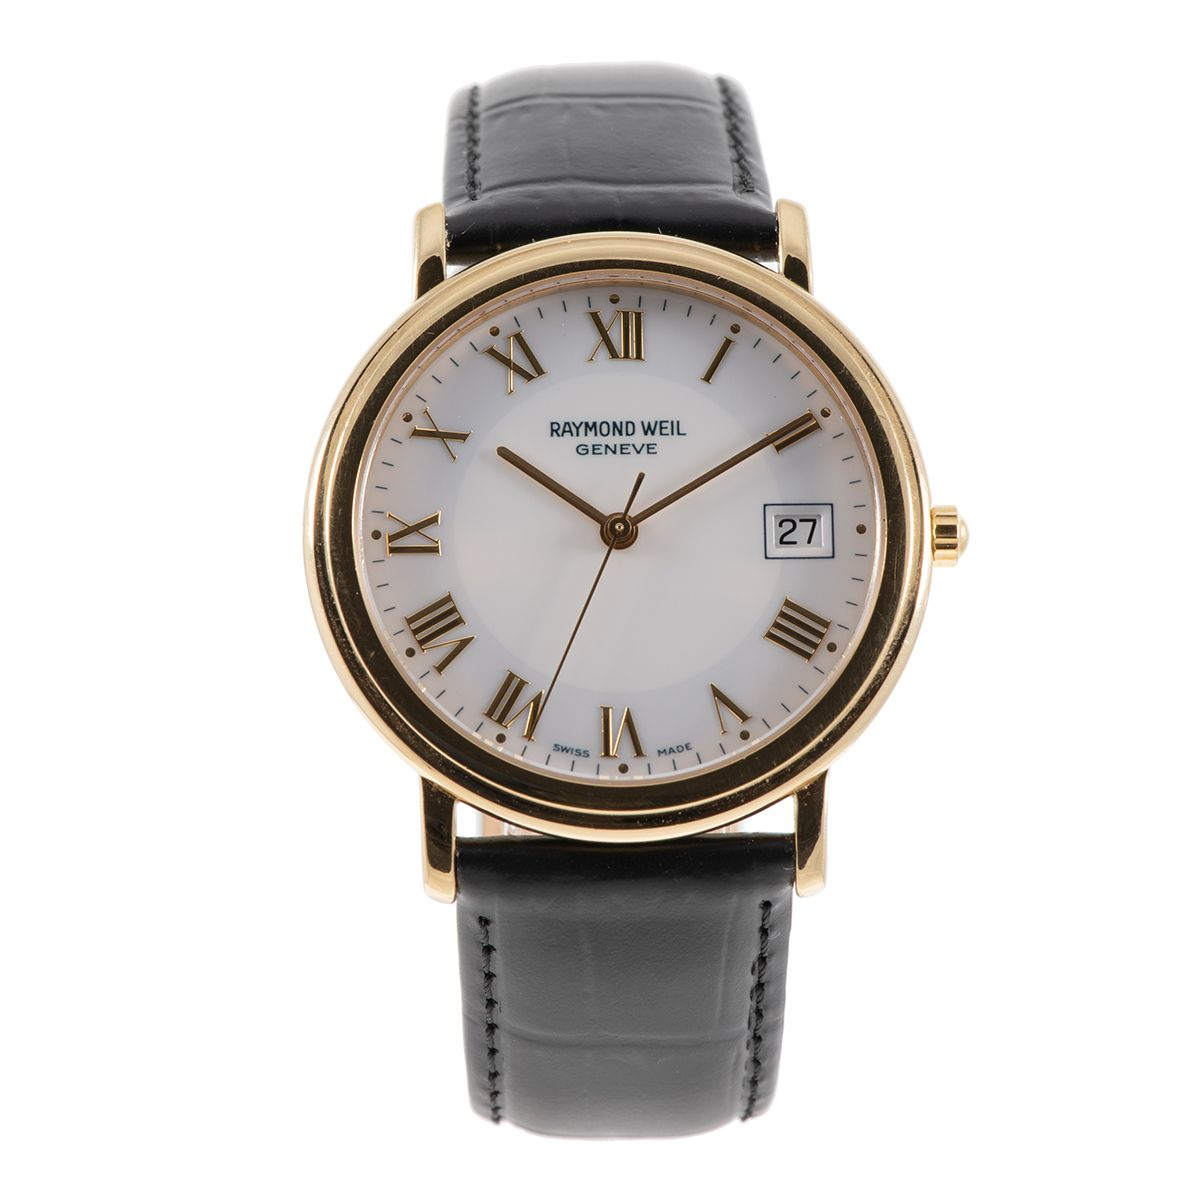 Raymond Weil Tradition 5575 Gold Plated & White 36mm Mens Watch